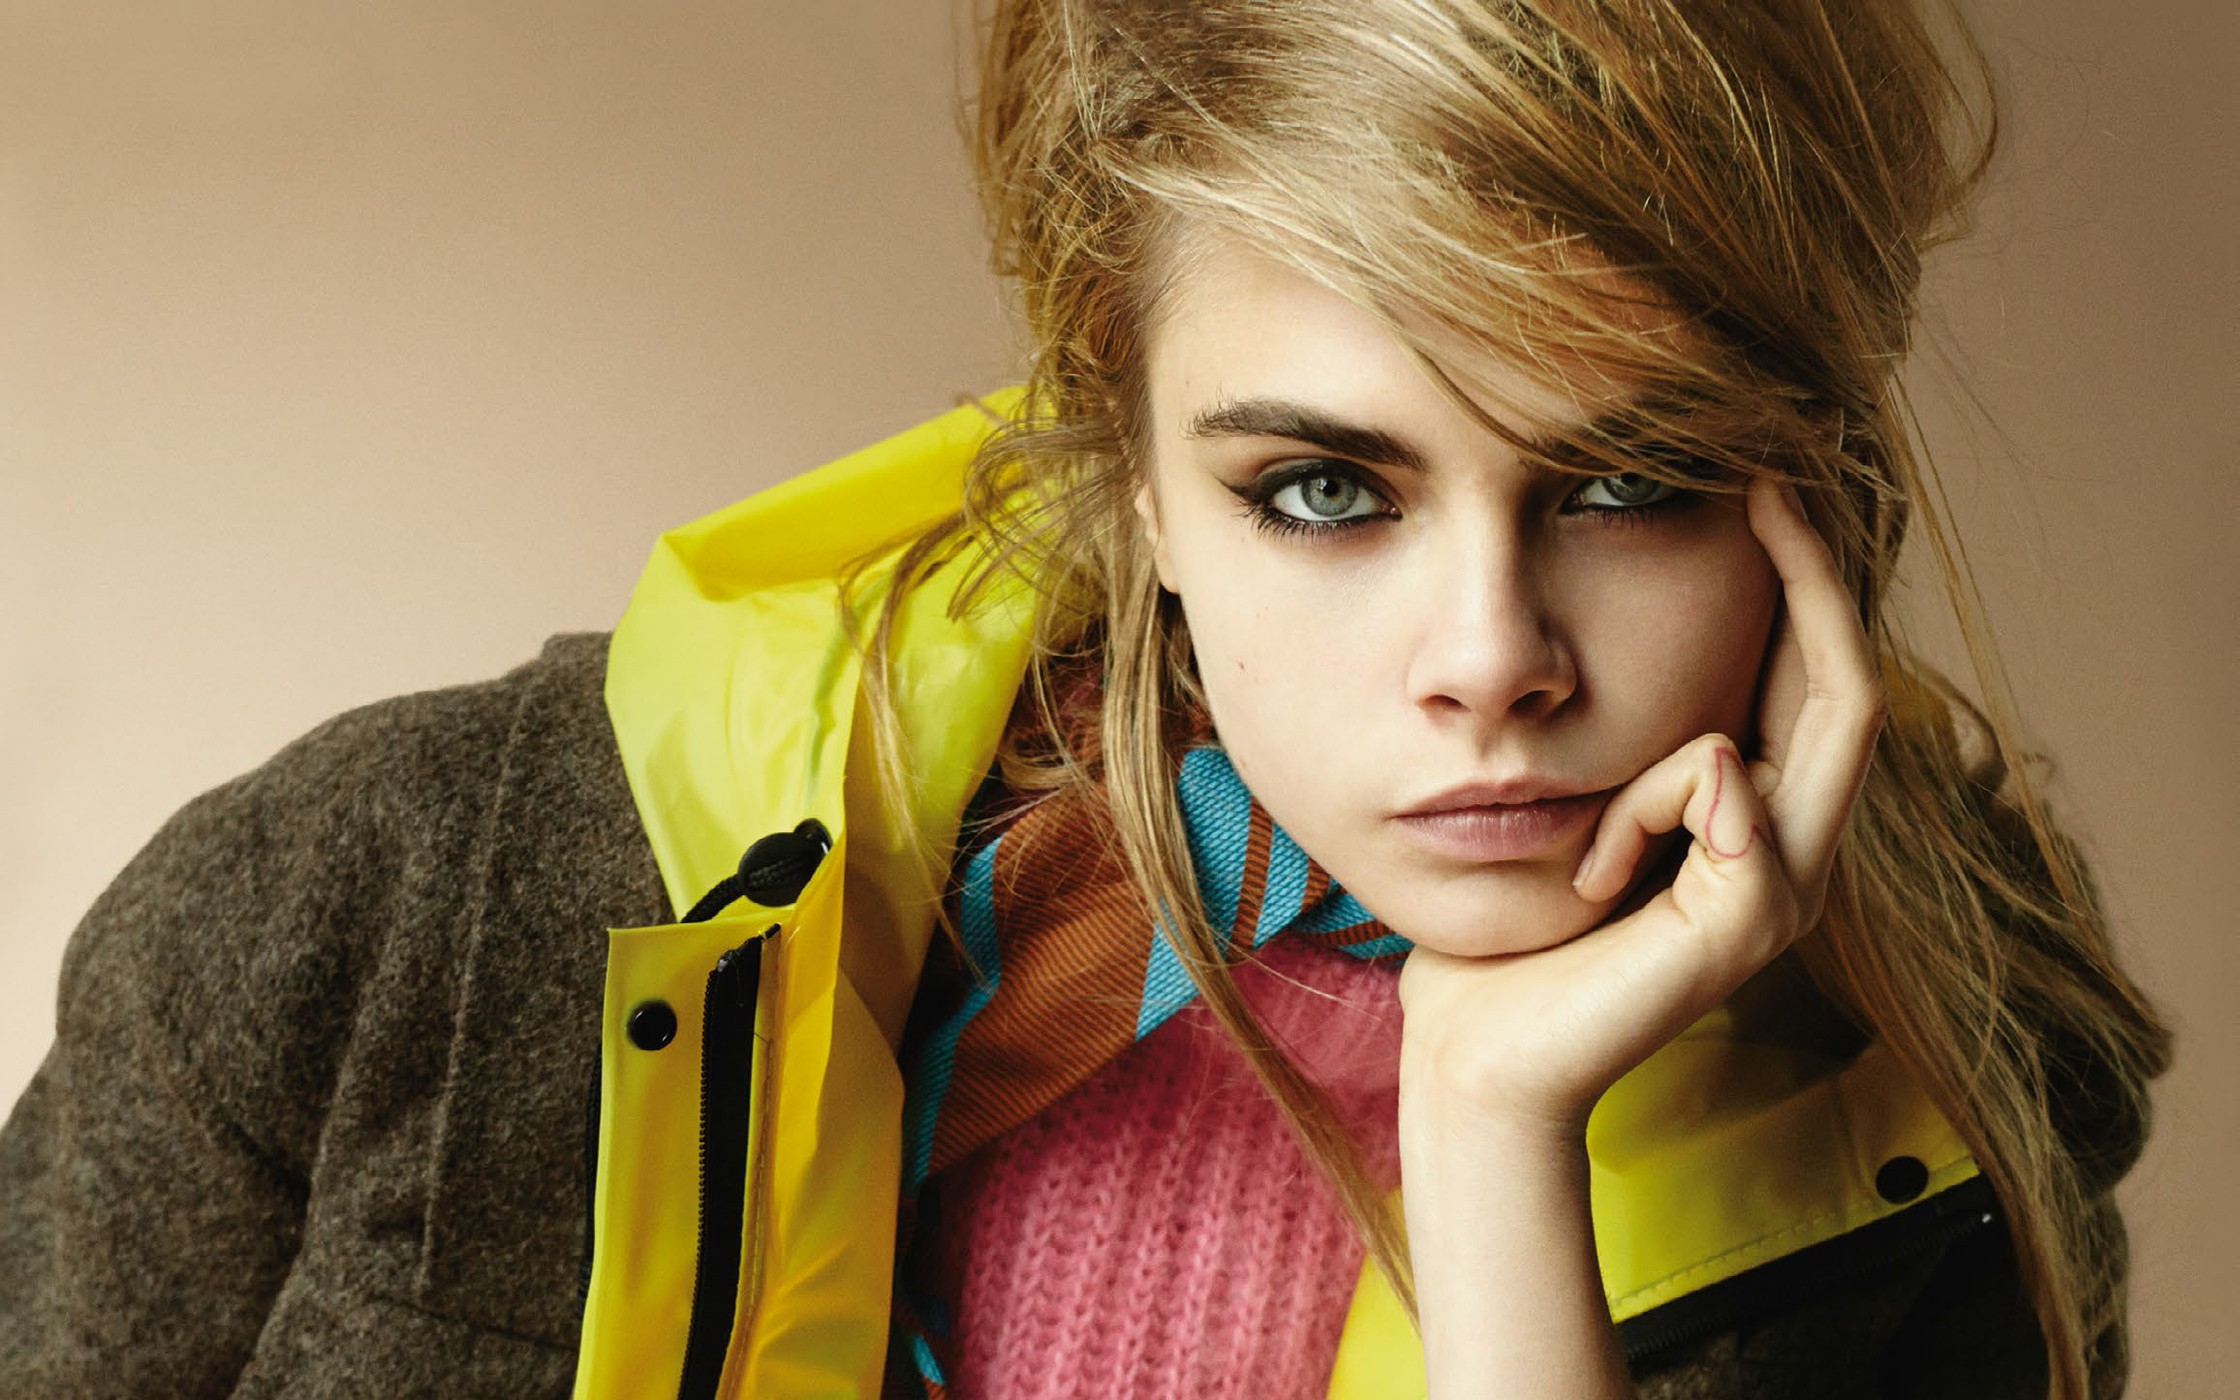 Top 10 beautiful women in the World, Cara Delevinge